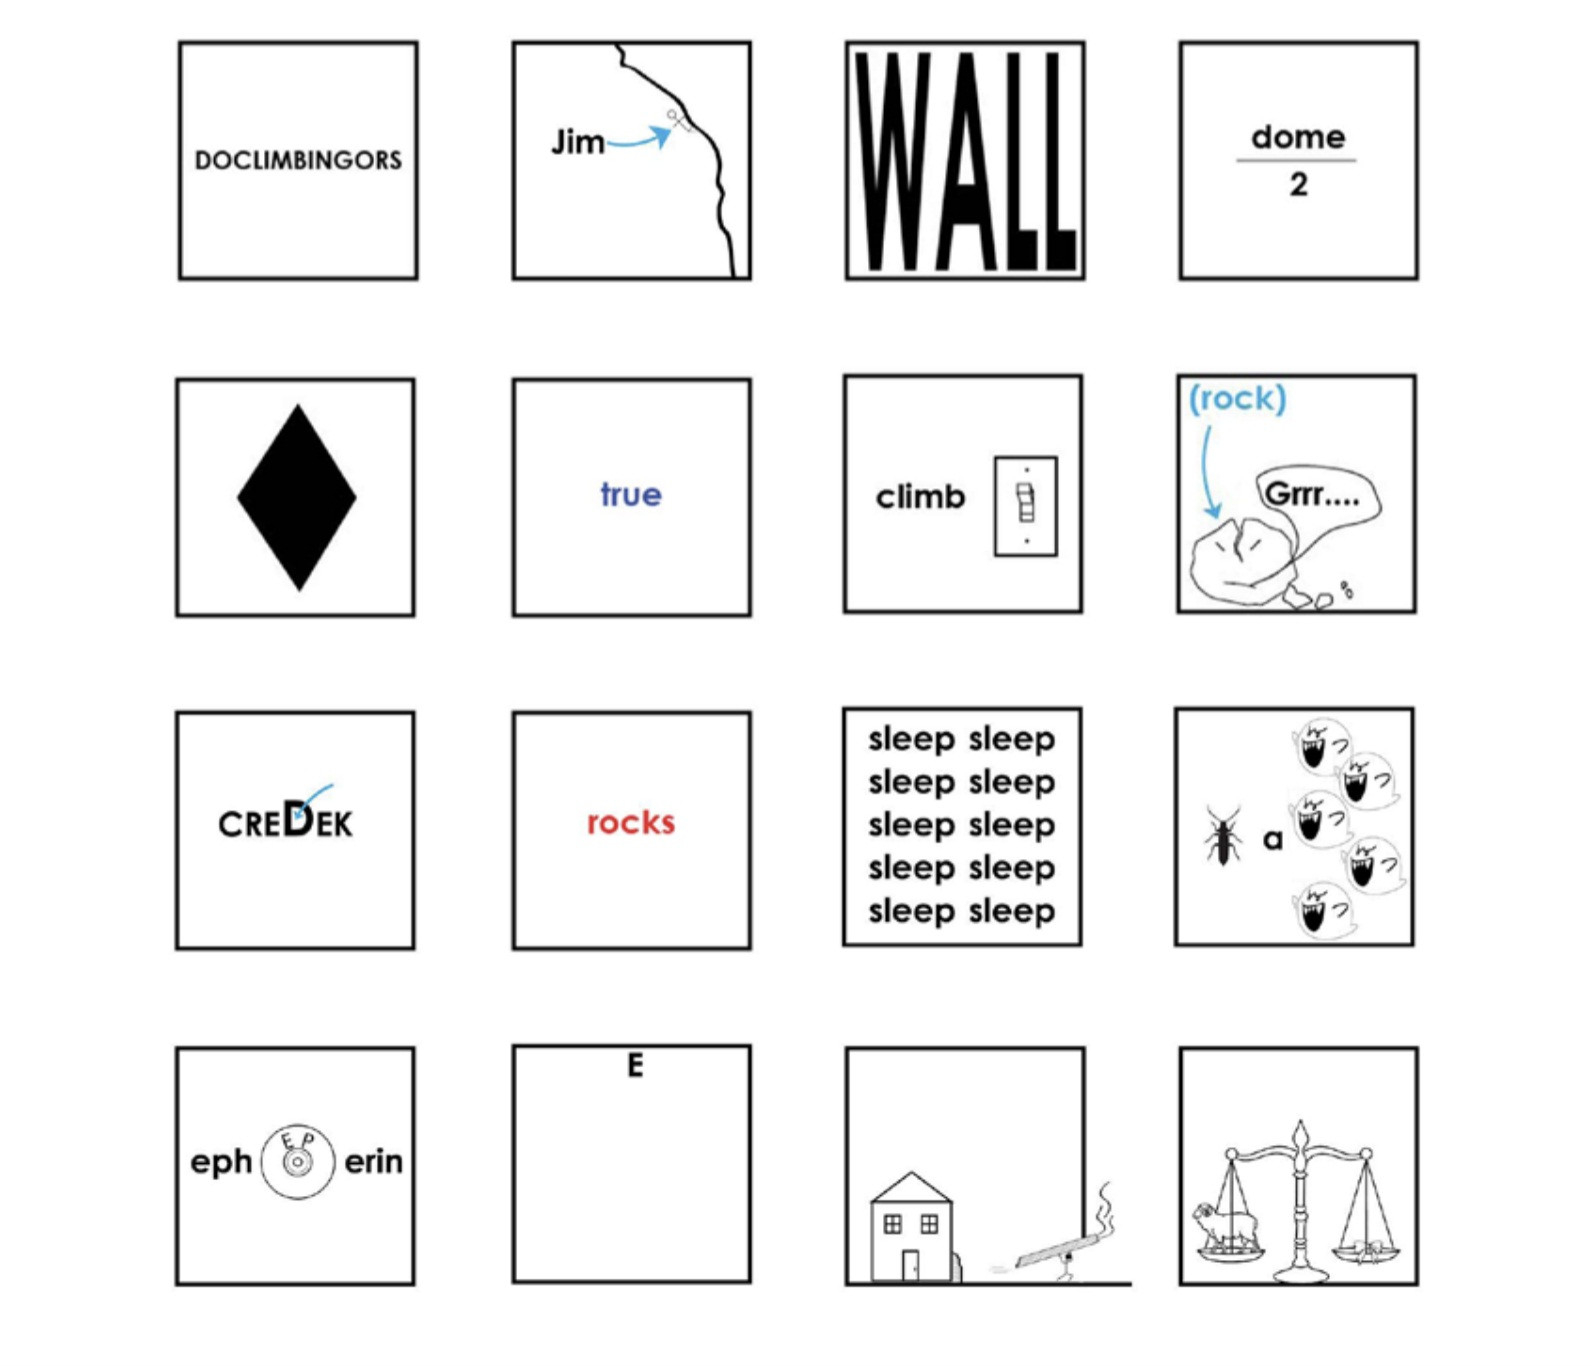 Rebus Puzzles for Adults Printable 26 Interesting Rebus Puzzles